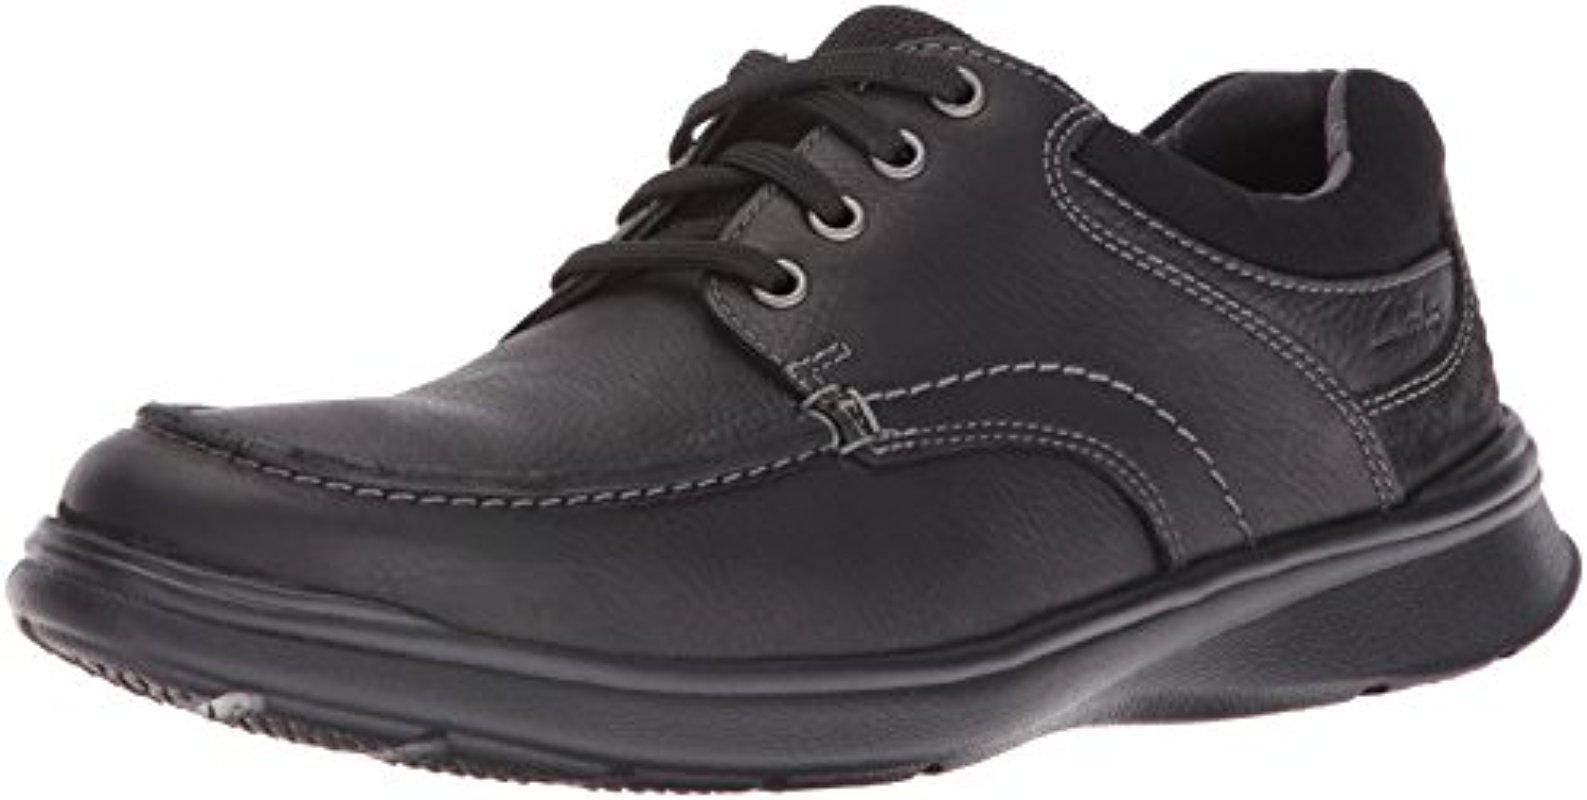 Clarks Cotrell Edge Leather Sneaker - Wide Width Available sO5nCAfh5D